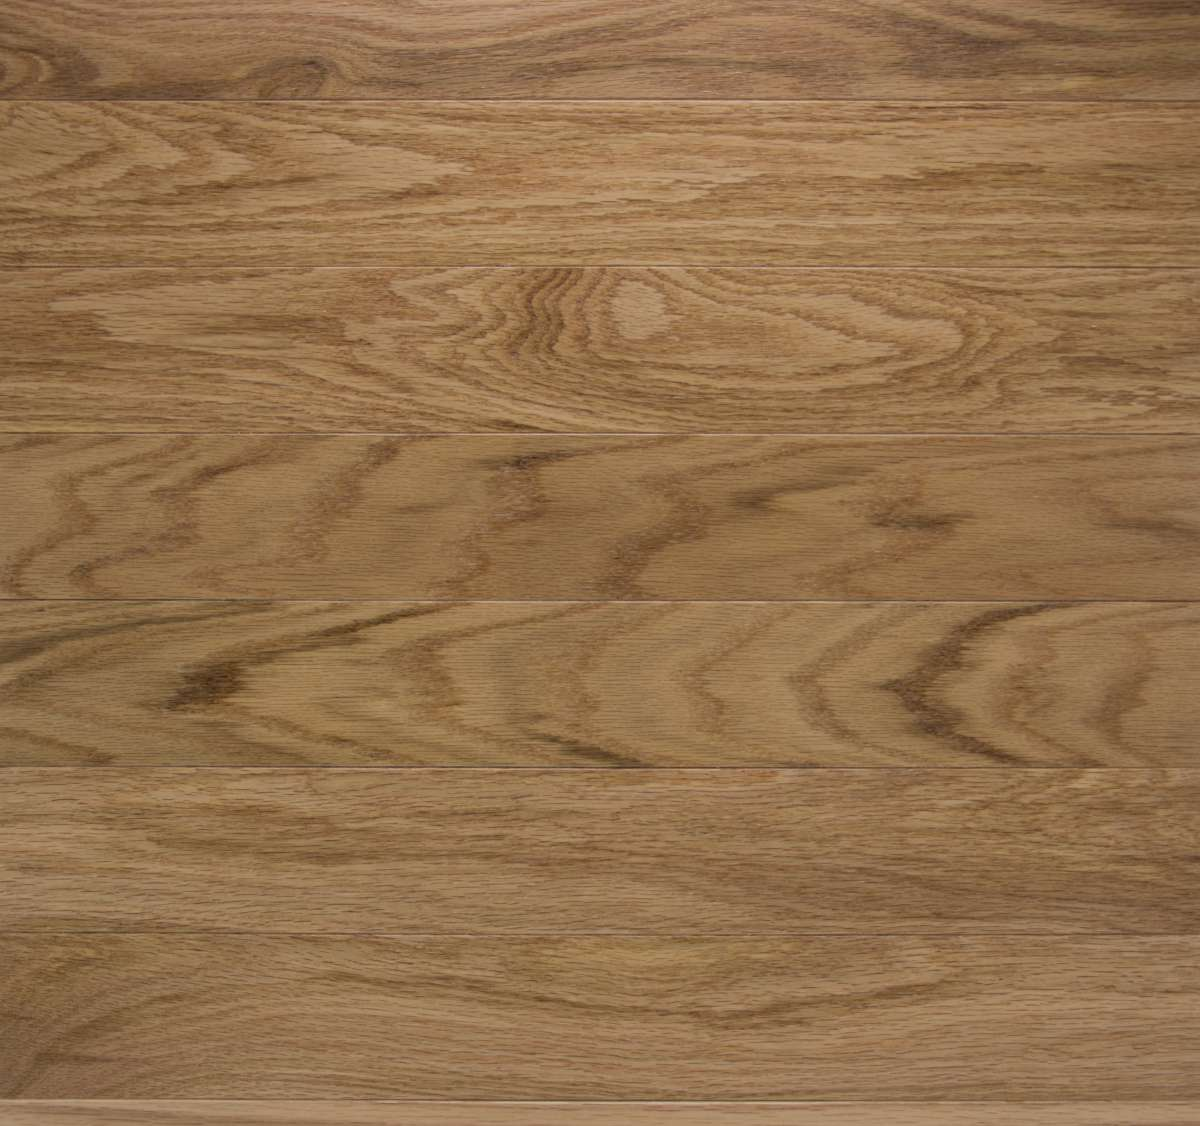 Somerset Classic Collection SolidPlus Engineered Hardwood Flooring